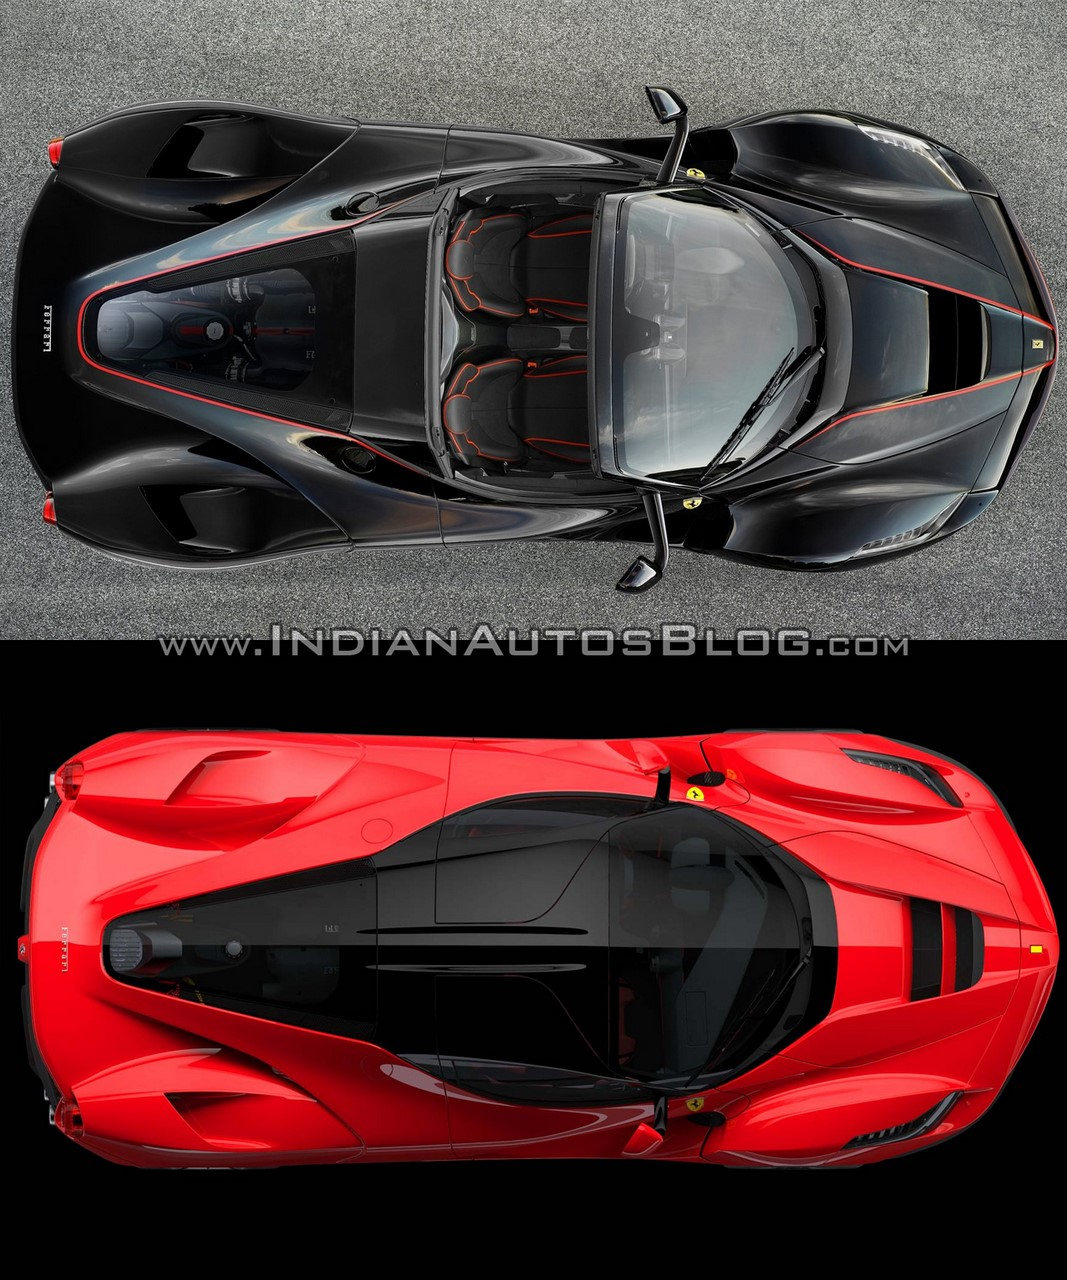 Ferrari LaFerrari Aperta (Spider) vs. Ferrari LaFerrari coupe top view